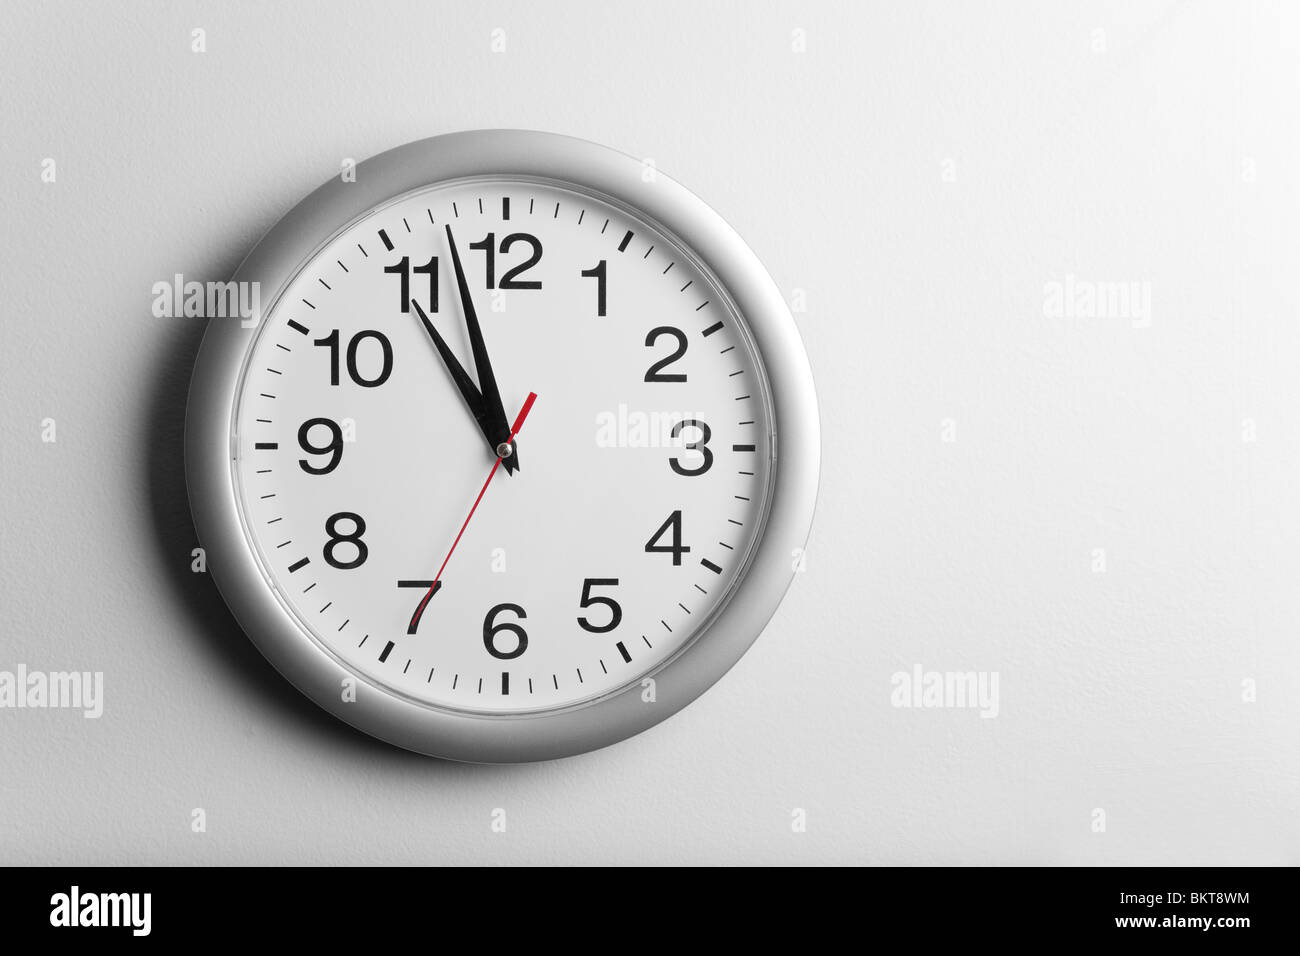 Clock on the wall - Stock Image